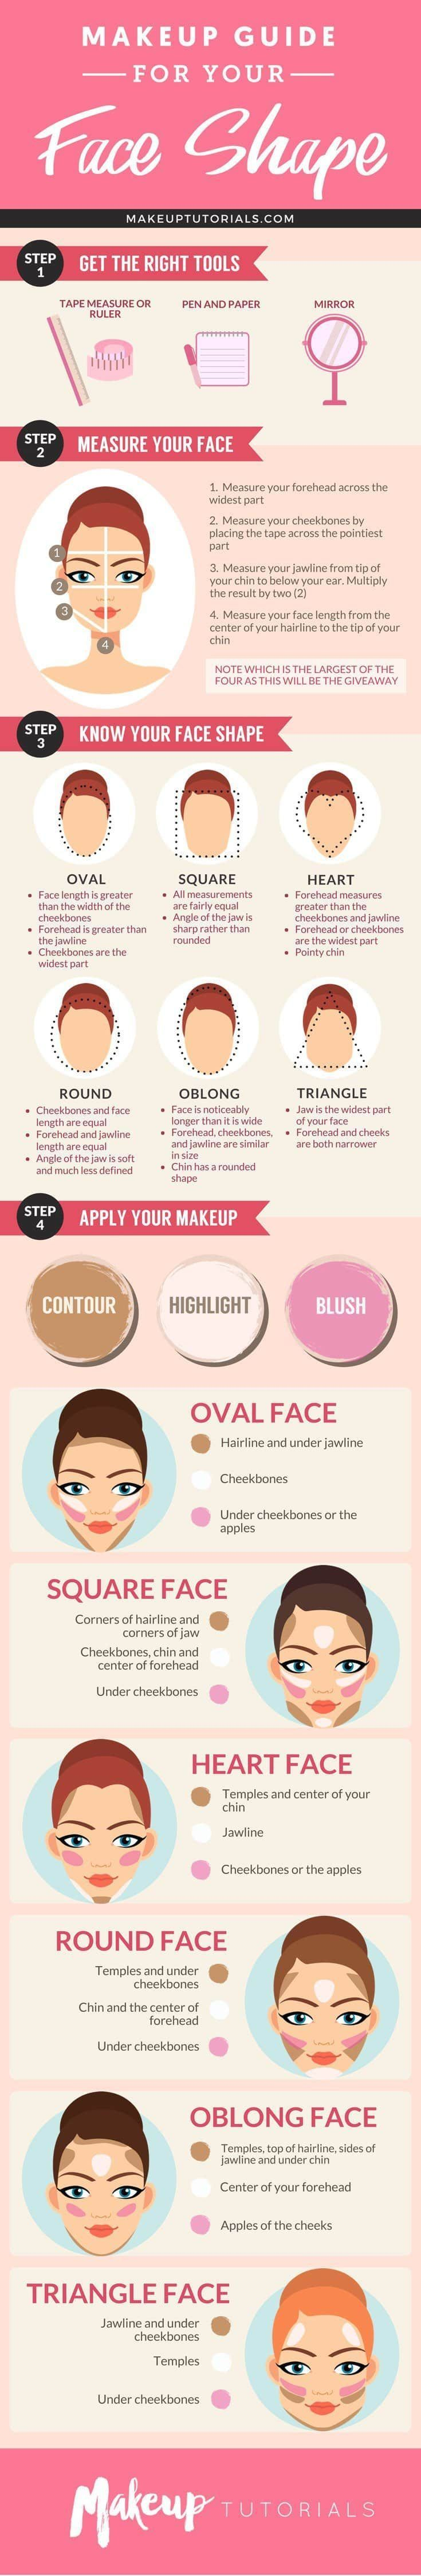 How To Contour Your Face Depending On Your Face Shape